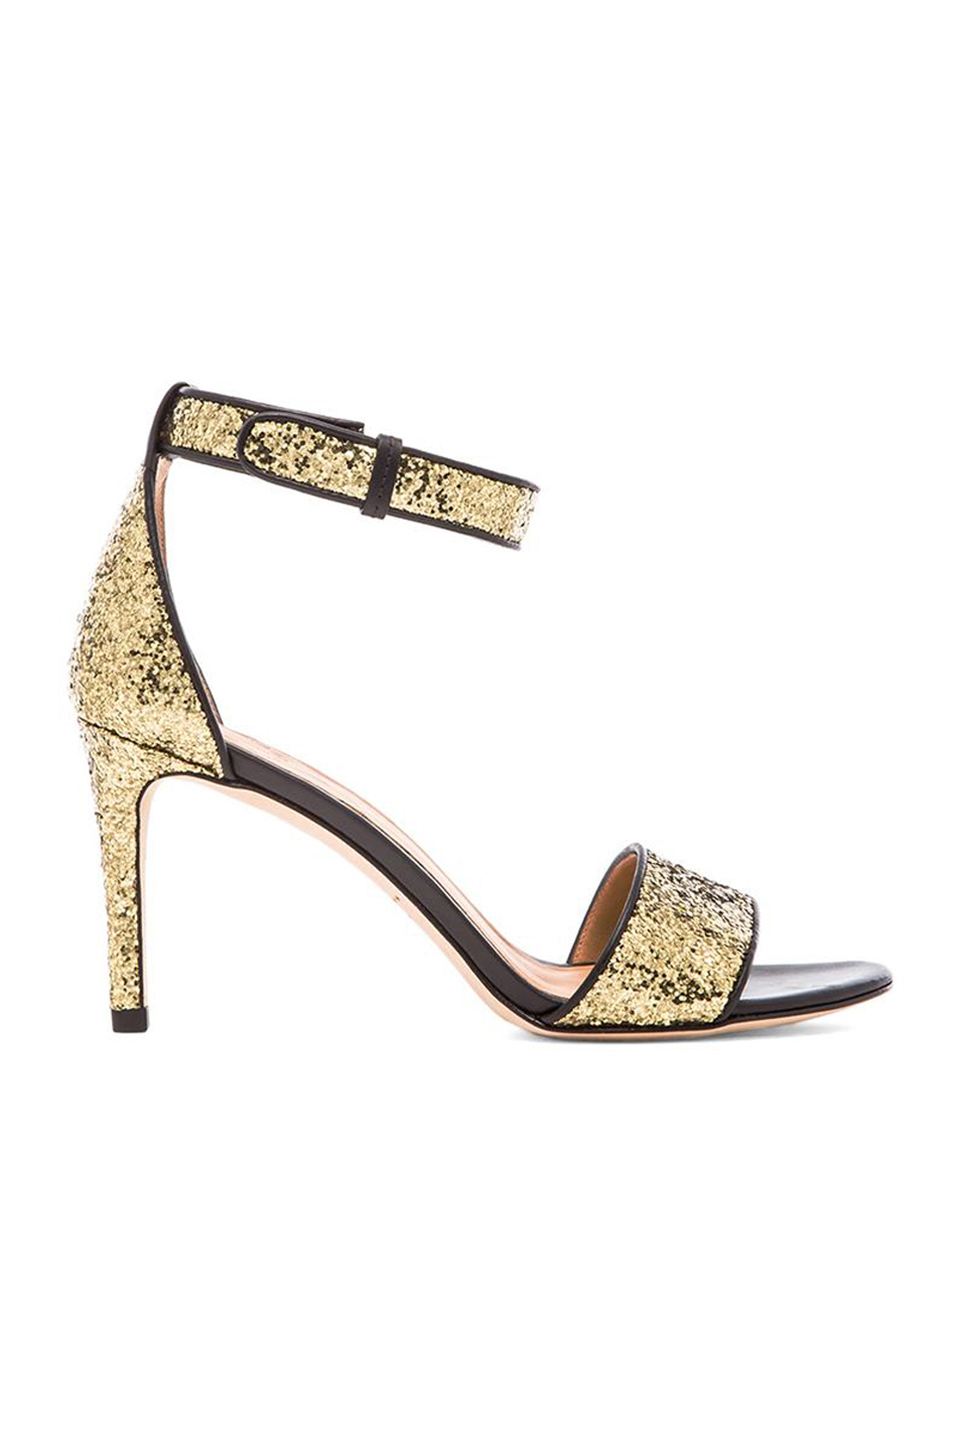 Marc by Marc Jacobs 85 mm Sandal Heel in Gold/Black